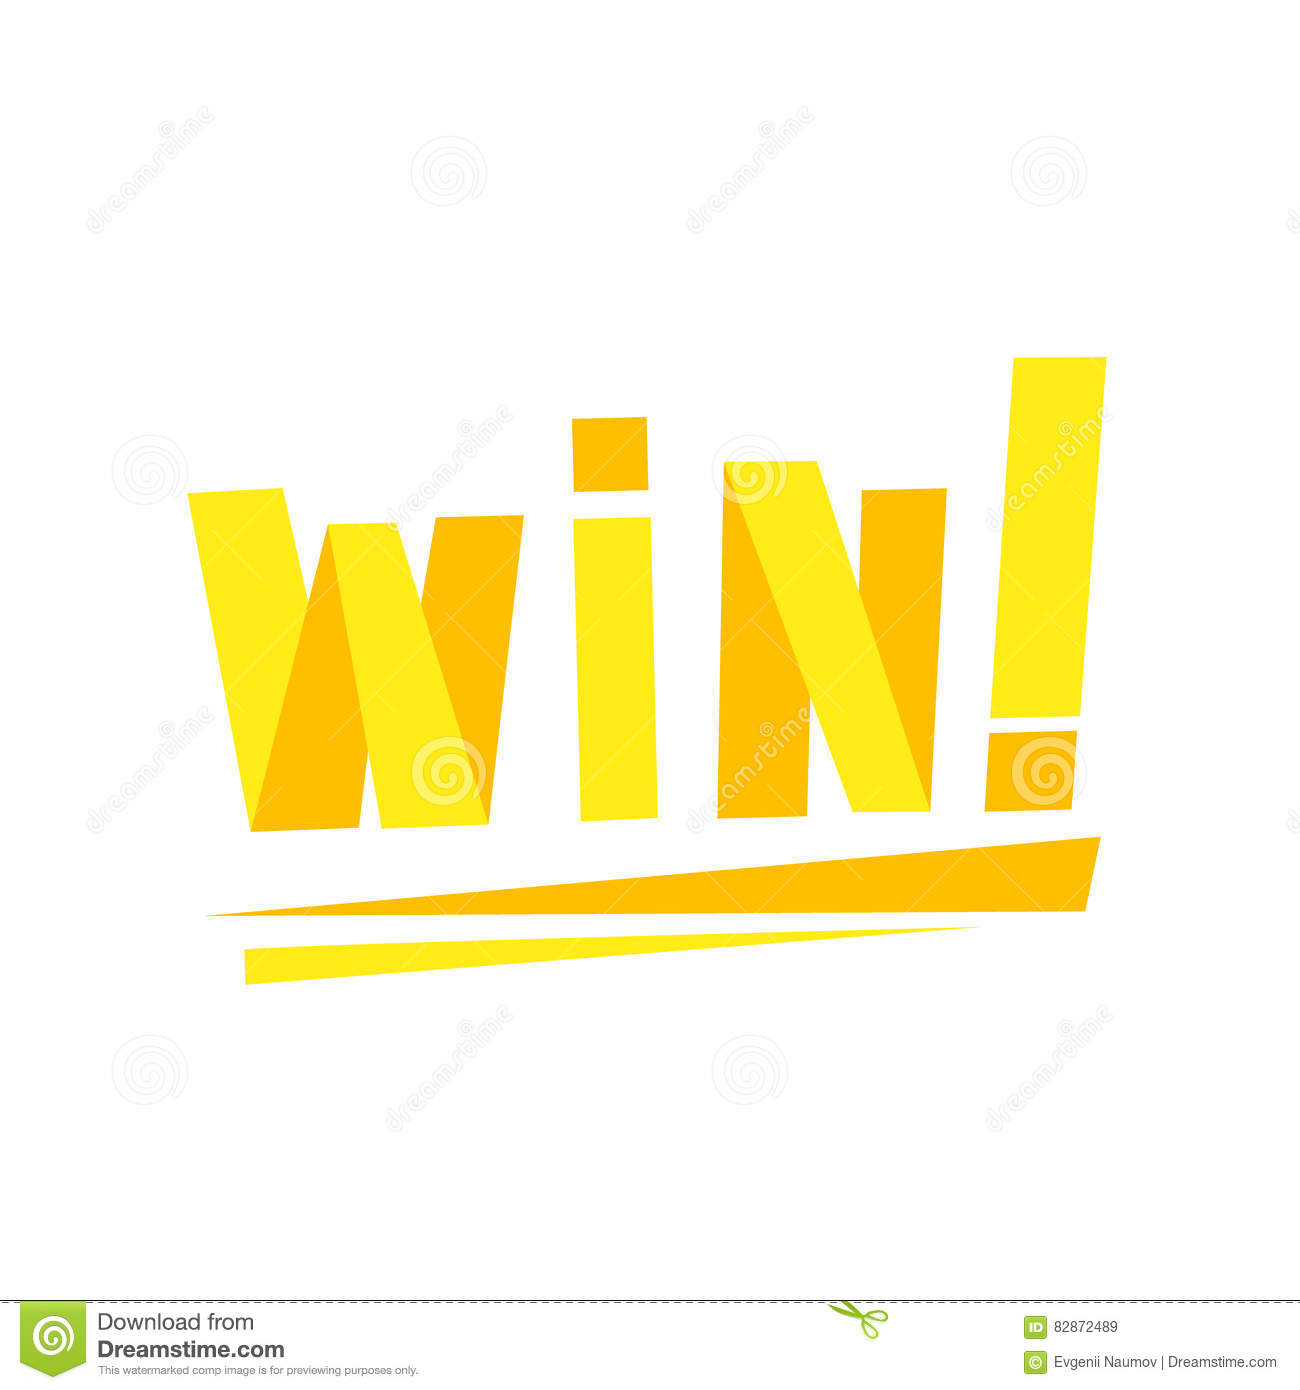 Win congratulations sticker with yellow letters design template for download win congratulations sticker with yellow letters design template for video game winning finale stock vector spiritdancerdesigns Gallery